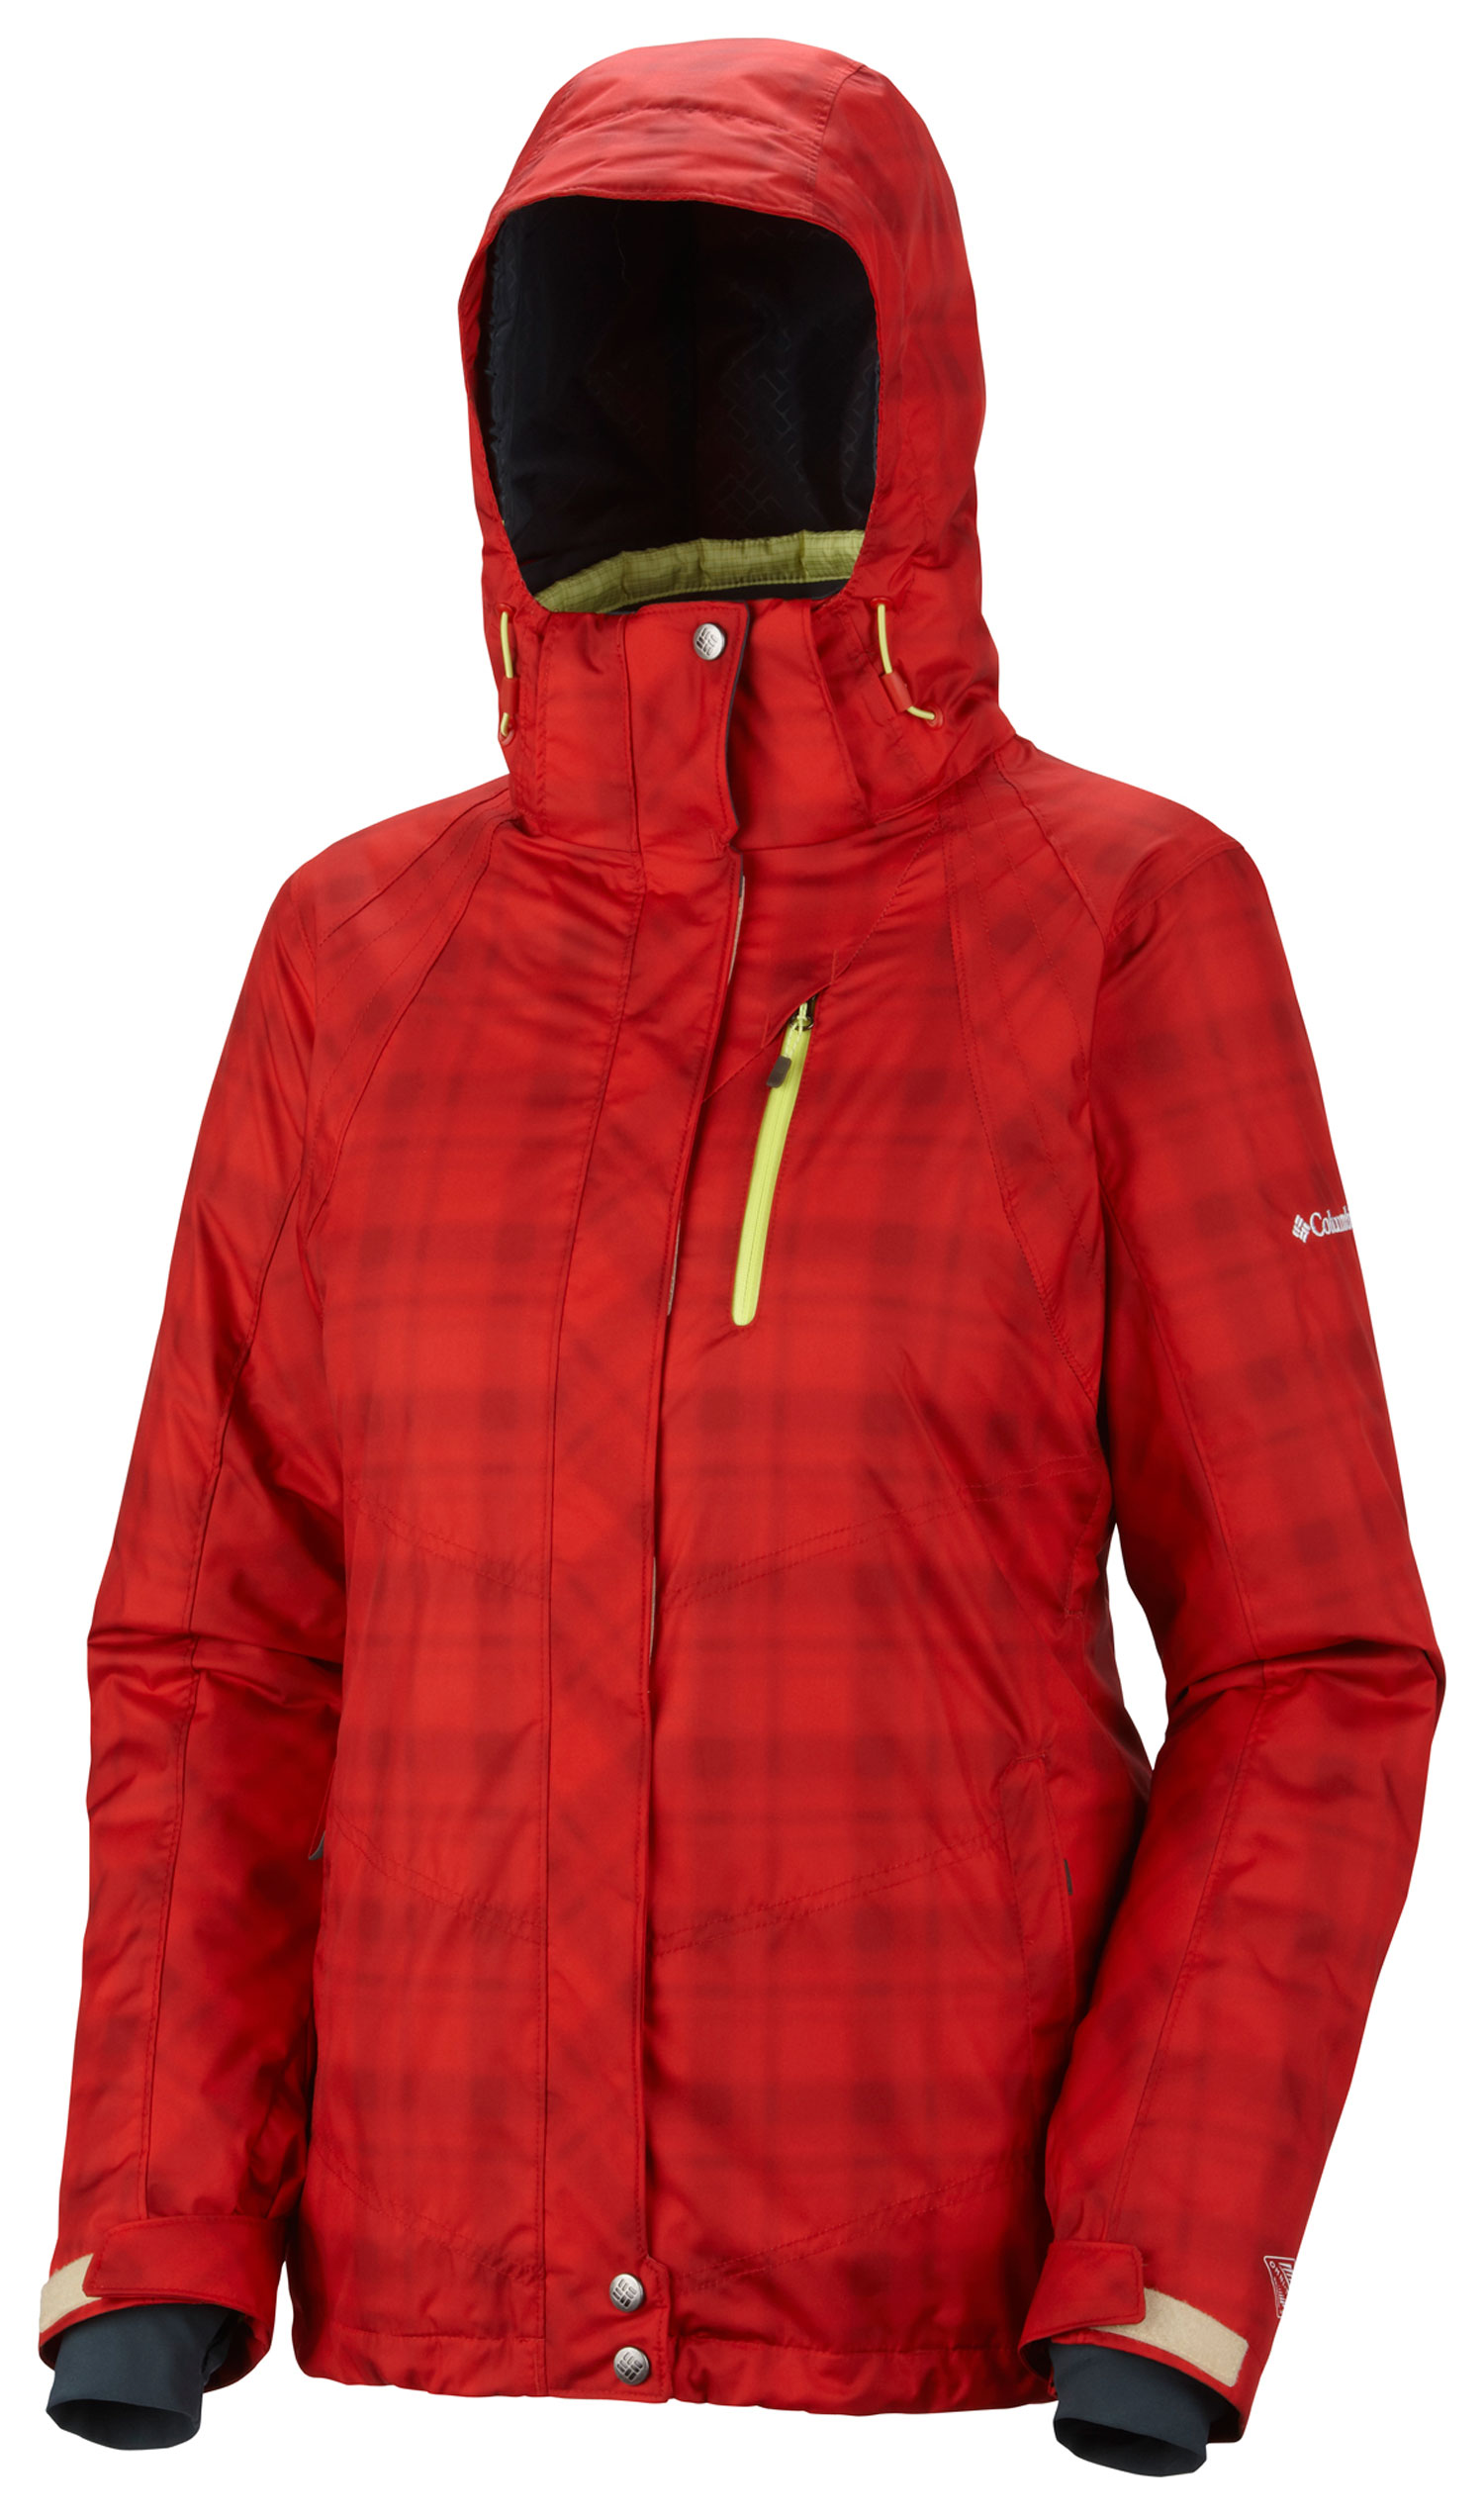 Ski Key Features of the Columbia Whirlibird Interchange Ski Jacket: FABRIC Shell: 100% nylon Legacy twill, 100% polyester Printed Plaid. Lining: 100% nylon embossed taffeta. Liner: 100% polyester Fine Line Plaid DP ripstop. Lining: 100% polyester Thermal Reflective. Insulation: 50% Polyester/50% recycled polyester OH, 100g. FIT Active Omni-Heat™ thermal reflective and insulated liner Omni-Tech™ waterproof/breathable fully seam sealed Omni-Shield™ advanced repellency liner Zip-in and 3-point Interchange System Removable, adjustable storm hood Underarm venting Drawcord adjustable hem Adjustable, snap back powder skirt Interior security pocket Waterproof zip-closed pockets Zip-closed pockets Media and goggle pocket Thumb holes Adjustable outer cuff-inner comfort cuff - $160.95